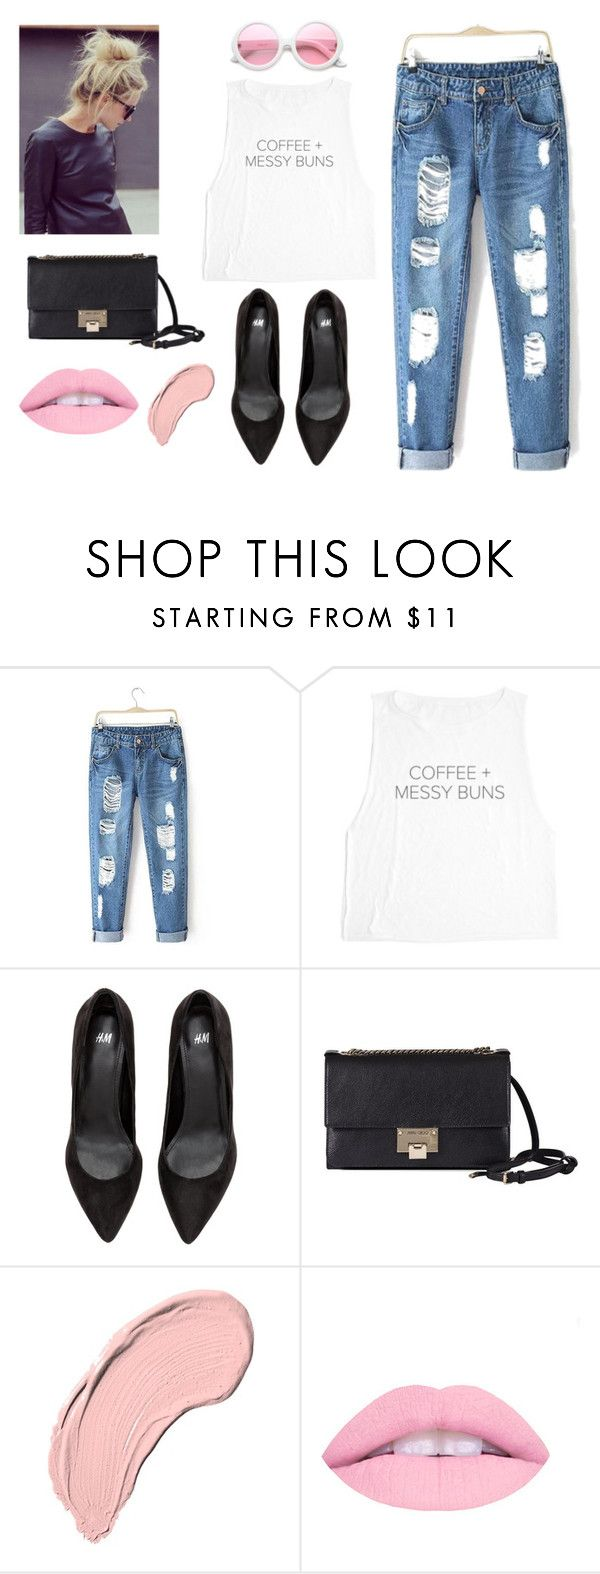 """""""MESSY TODAY"""" by sweetlittlebunny on Polyvore featuring moda, Jimmy Choo, NYX i ZeroUV"""